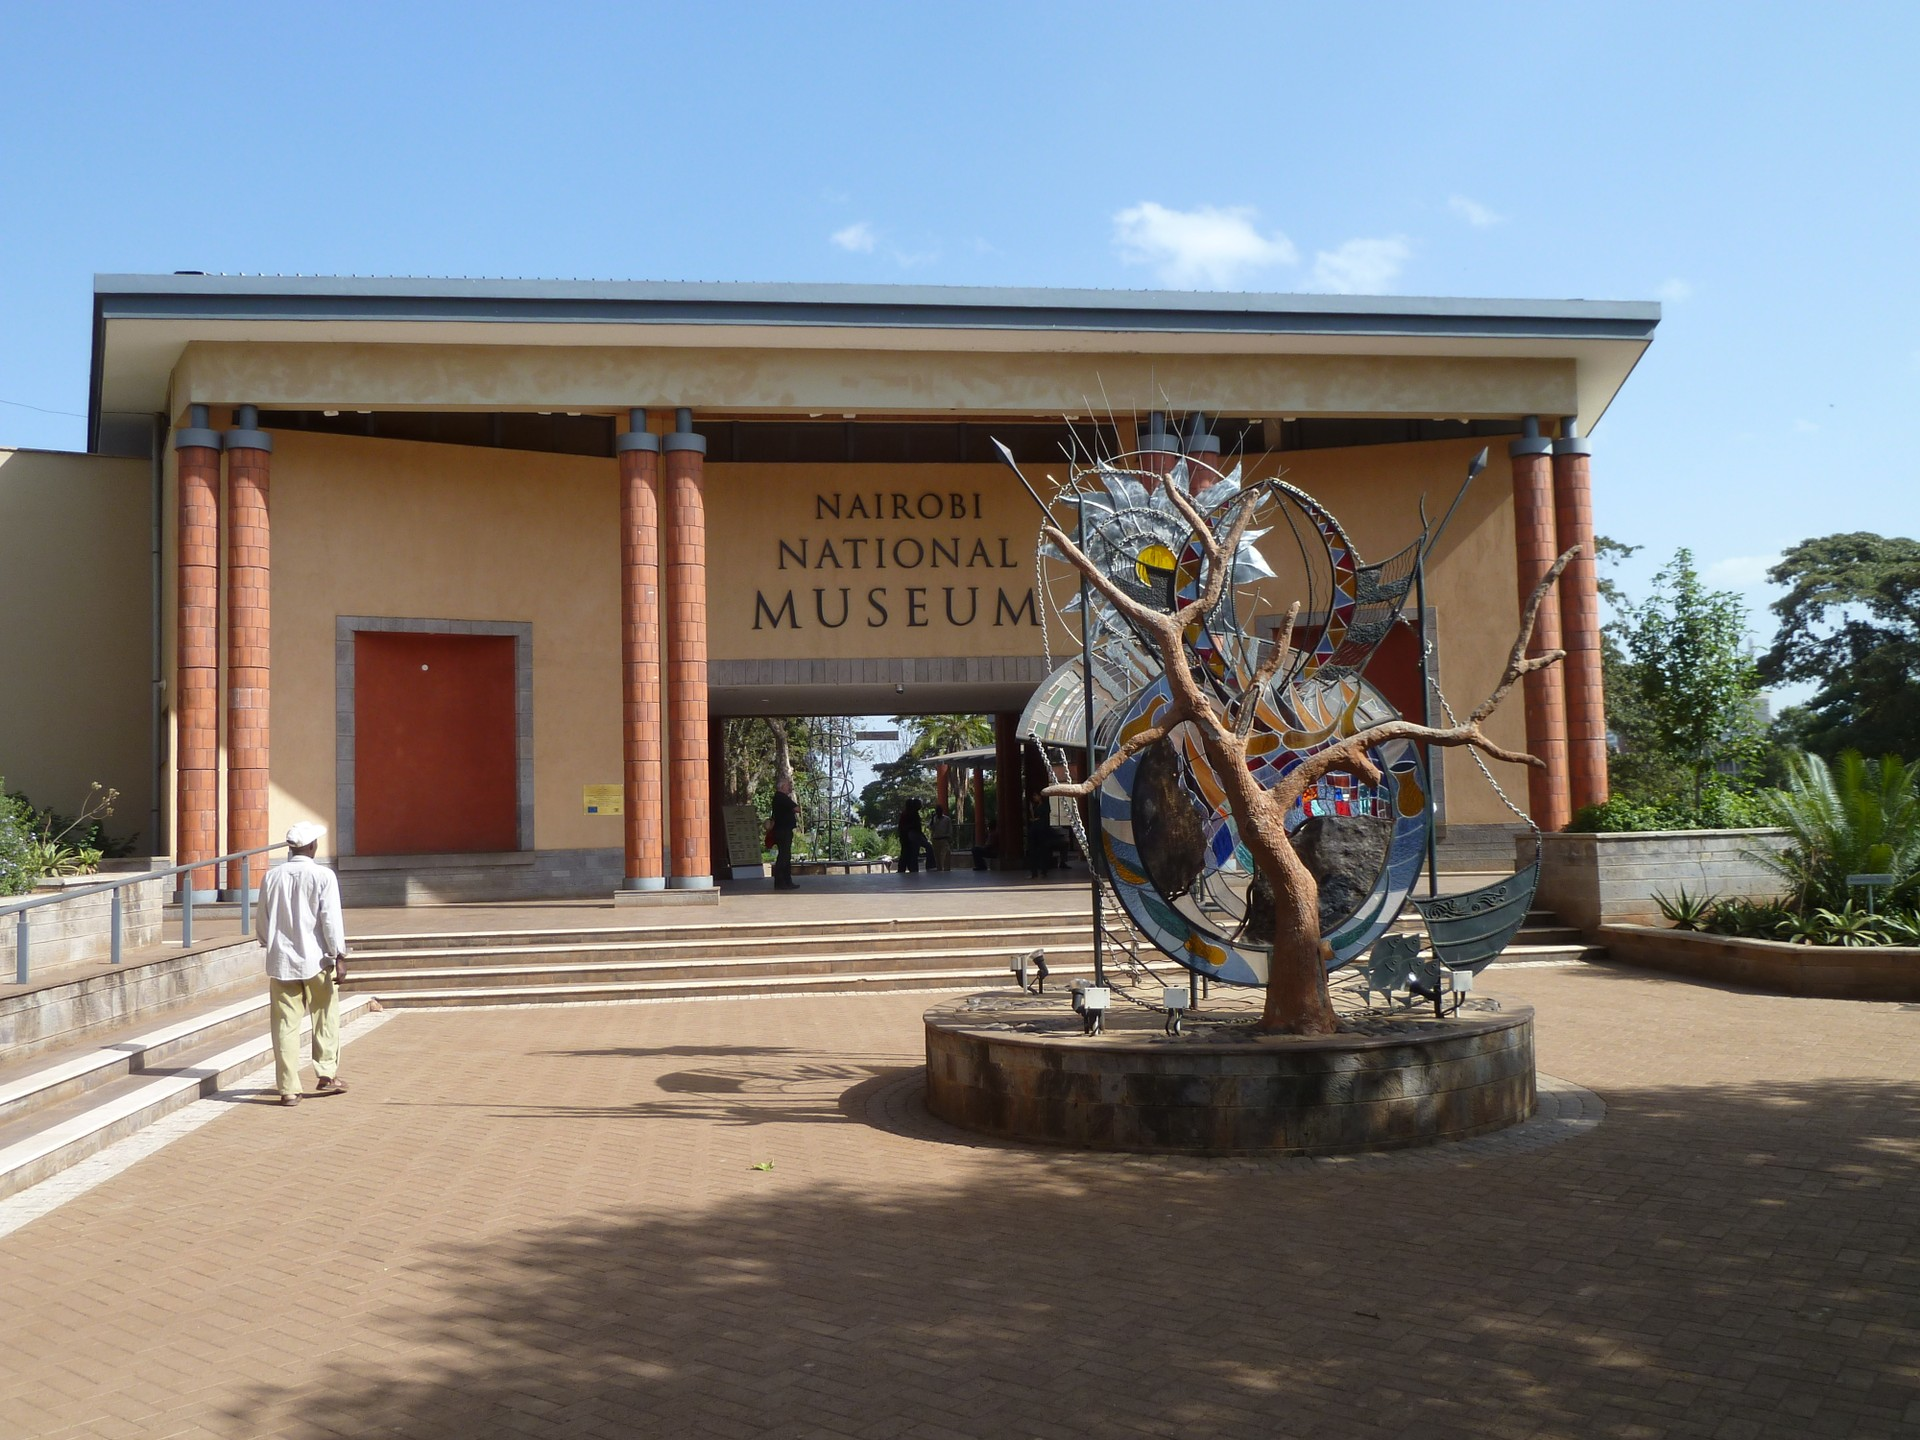 Entrance to Nairobi National Museum